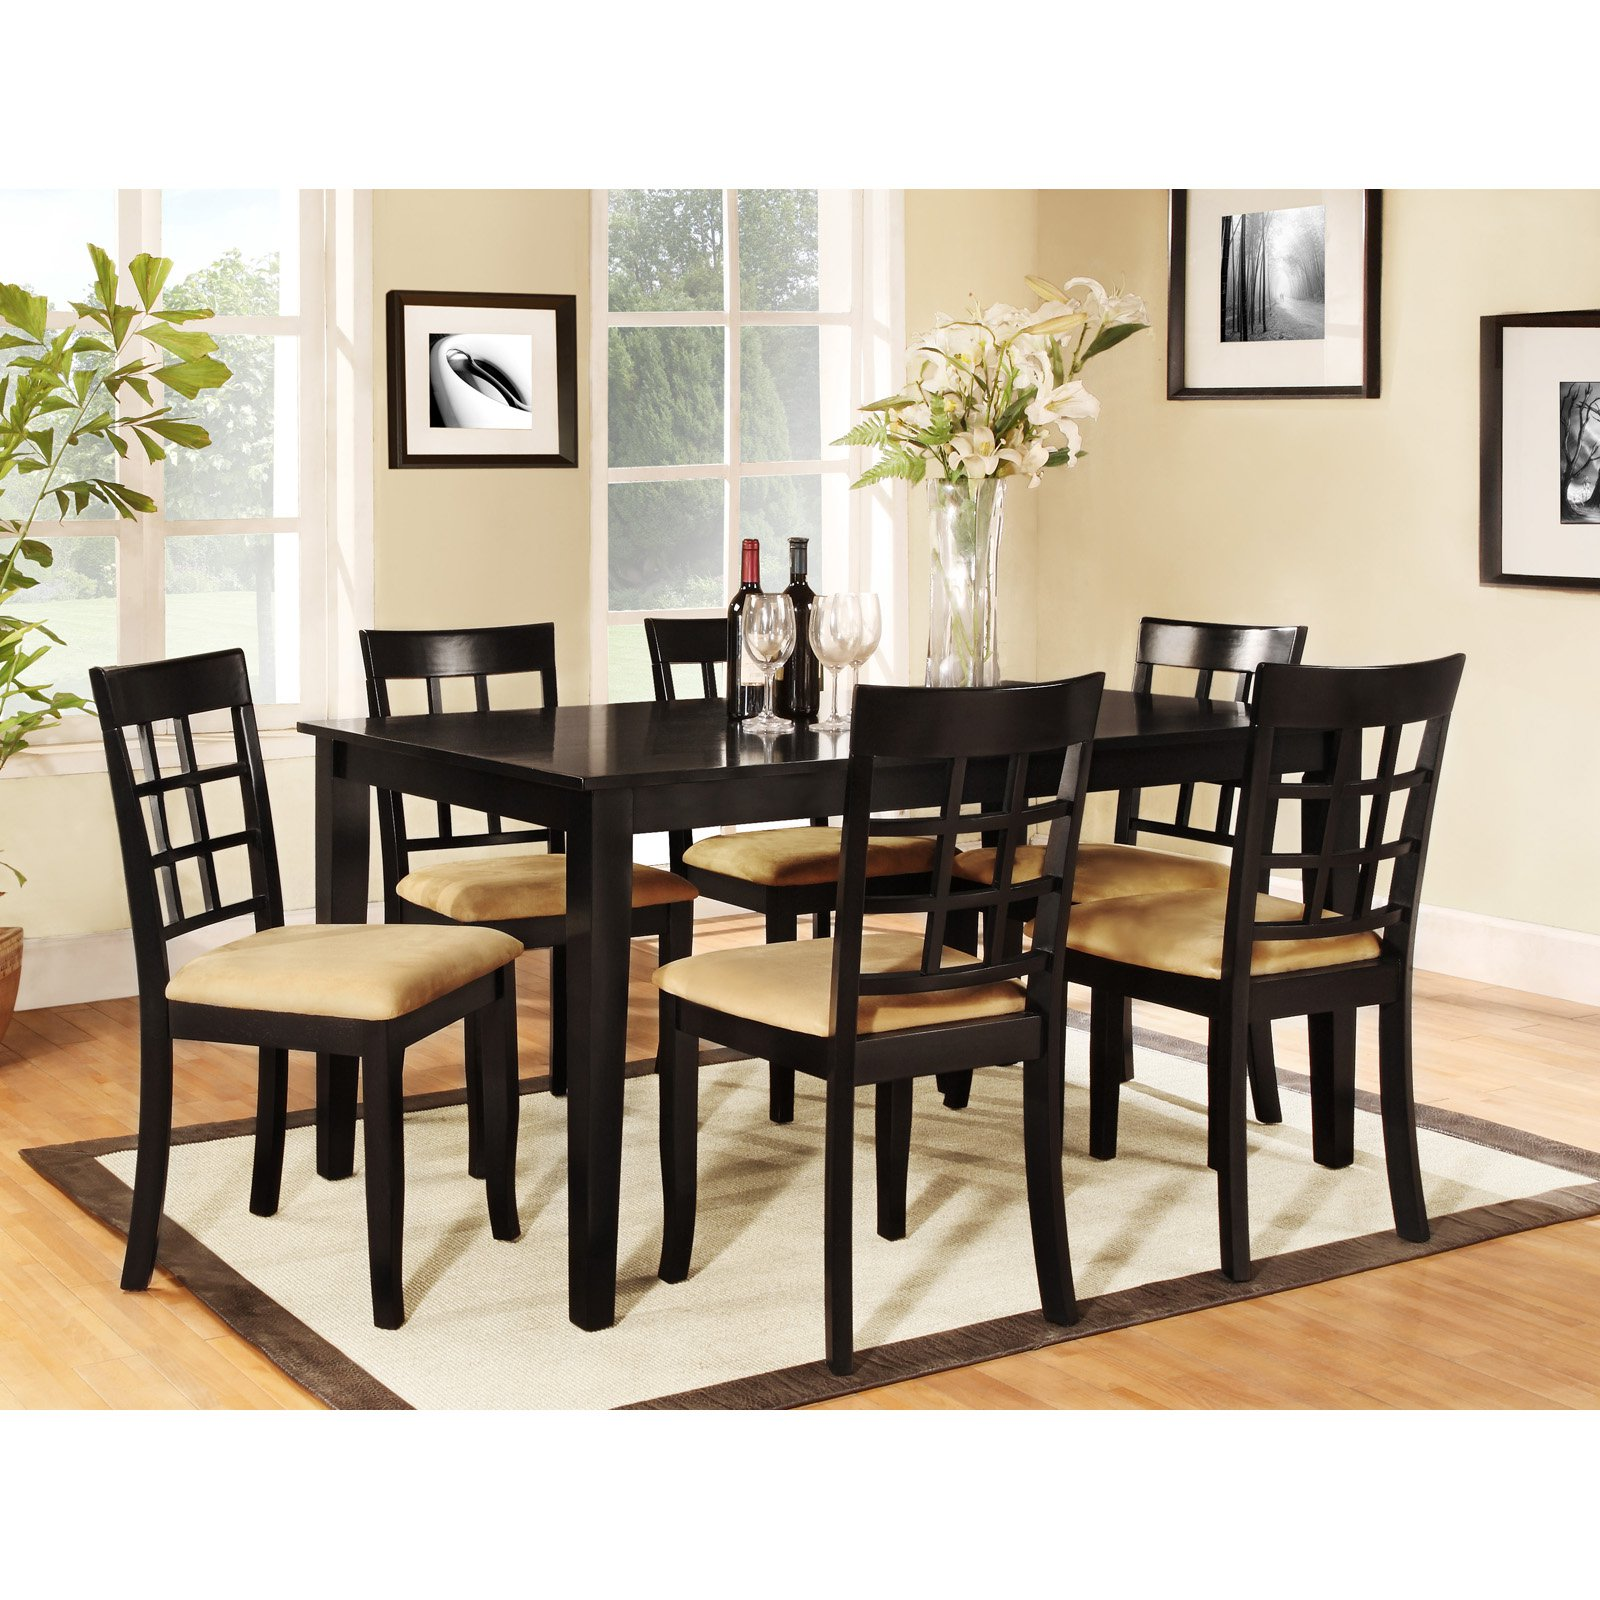 Homelegance Tibalt 7 pc. Rectangle Black Dining Table Set - 60 in. with 6 Window Back Chairs